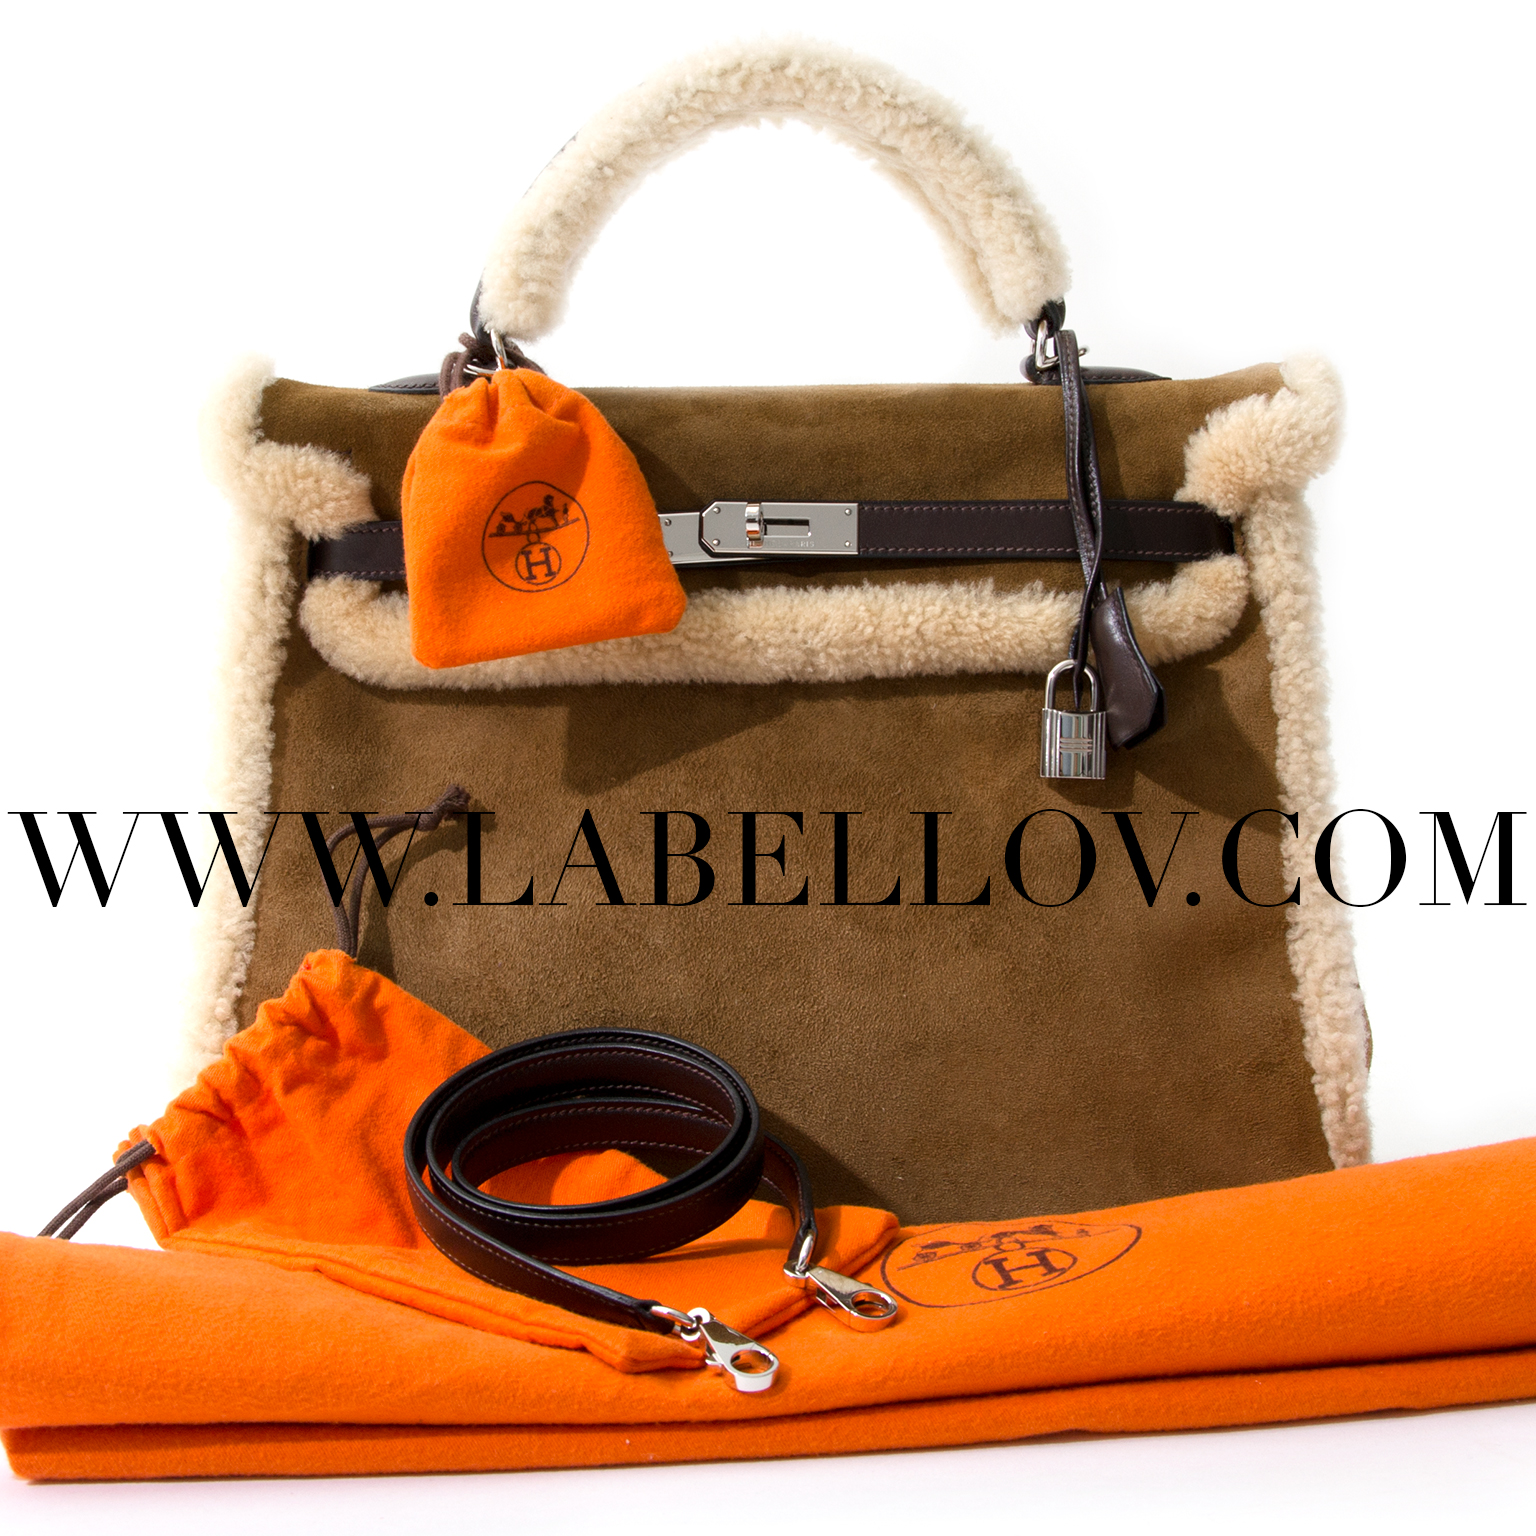 buy safe and secure 100% authentic store fresh RARE Hermes Kelly 35 Teddy Plush like new webshop labellov